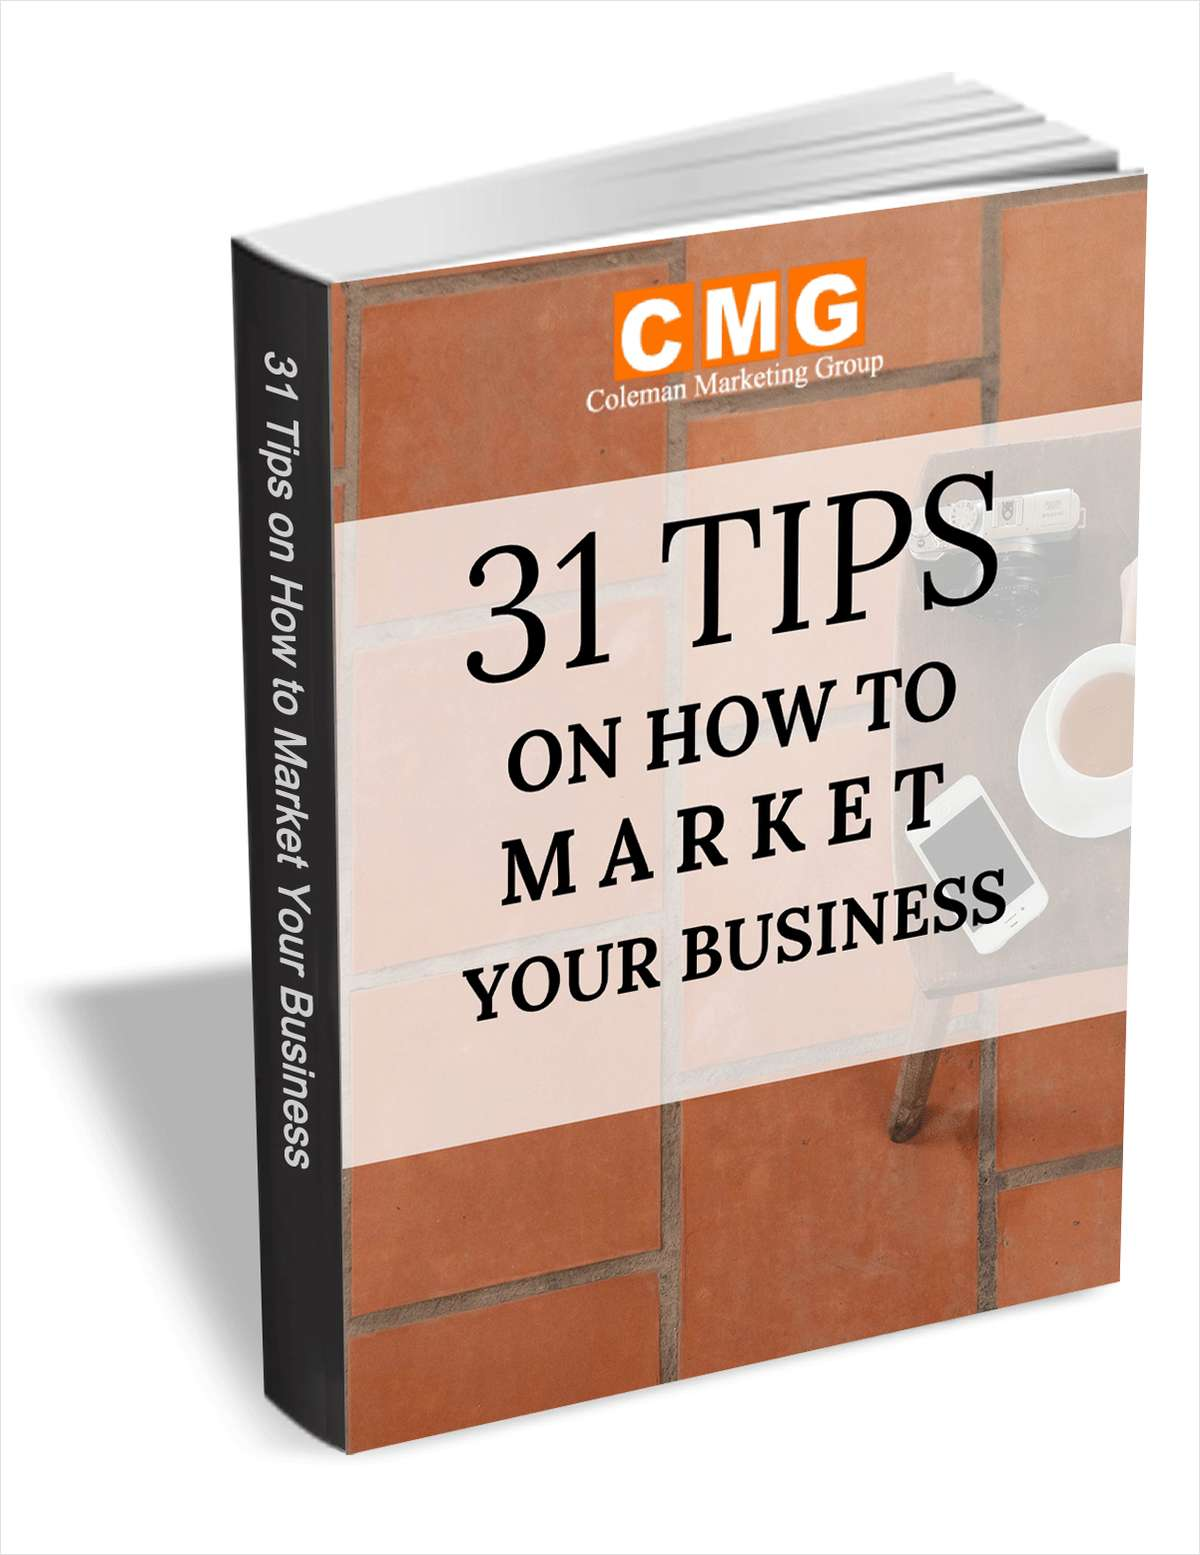 31 Tips On How To Market Your Business